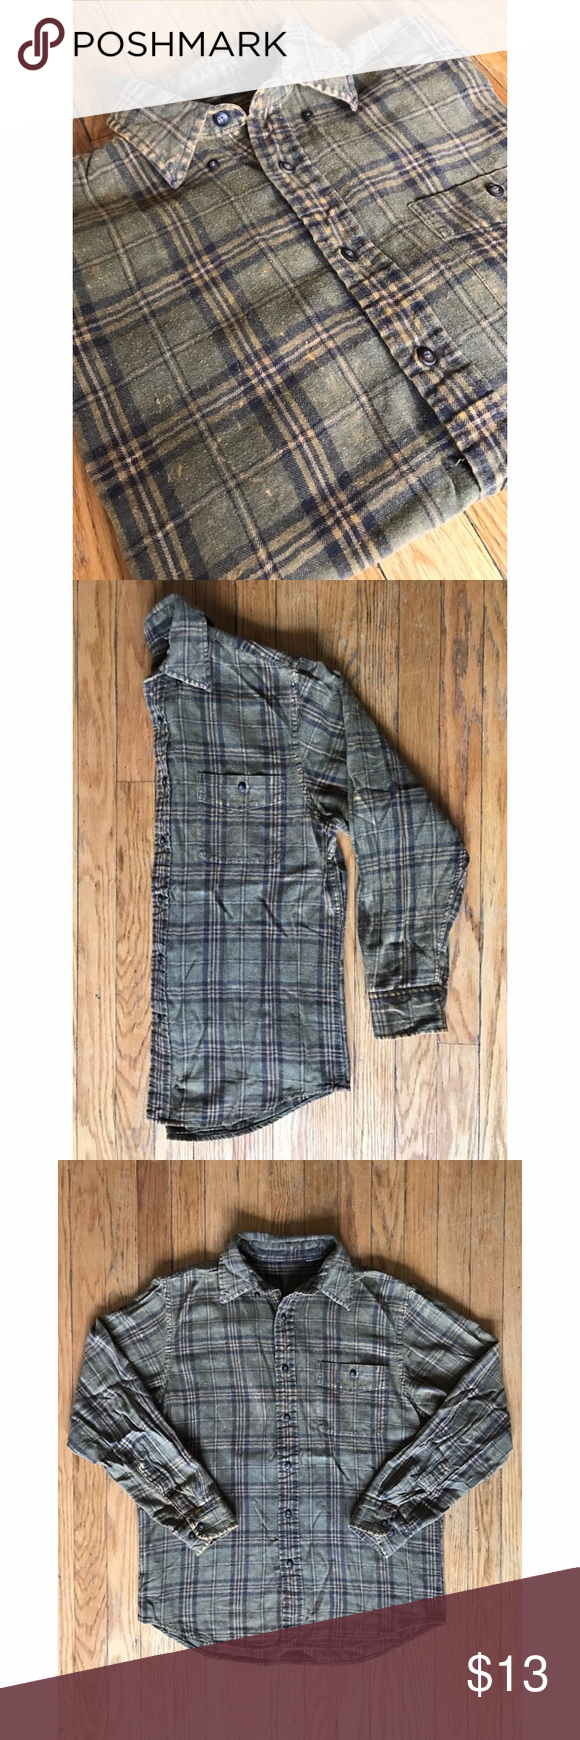 Urban Outfitters Flannel Part of the Urban Renewal line, fits small/medium. Worn in/distressed looked but barely worn, close up photos are truest to color. Urban Outfitters Tops Button Down Shirts